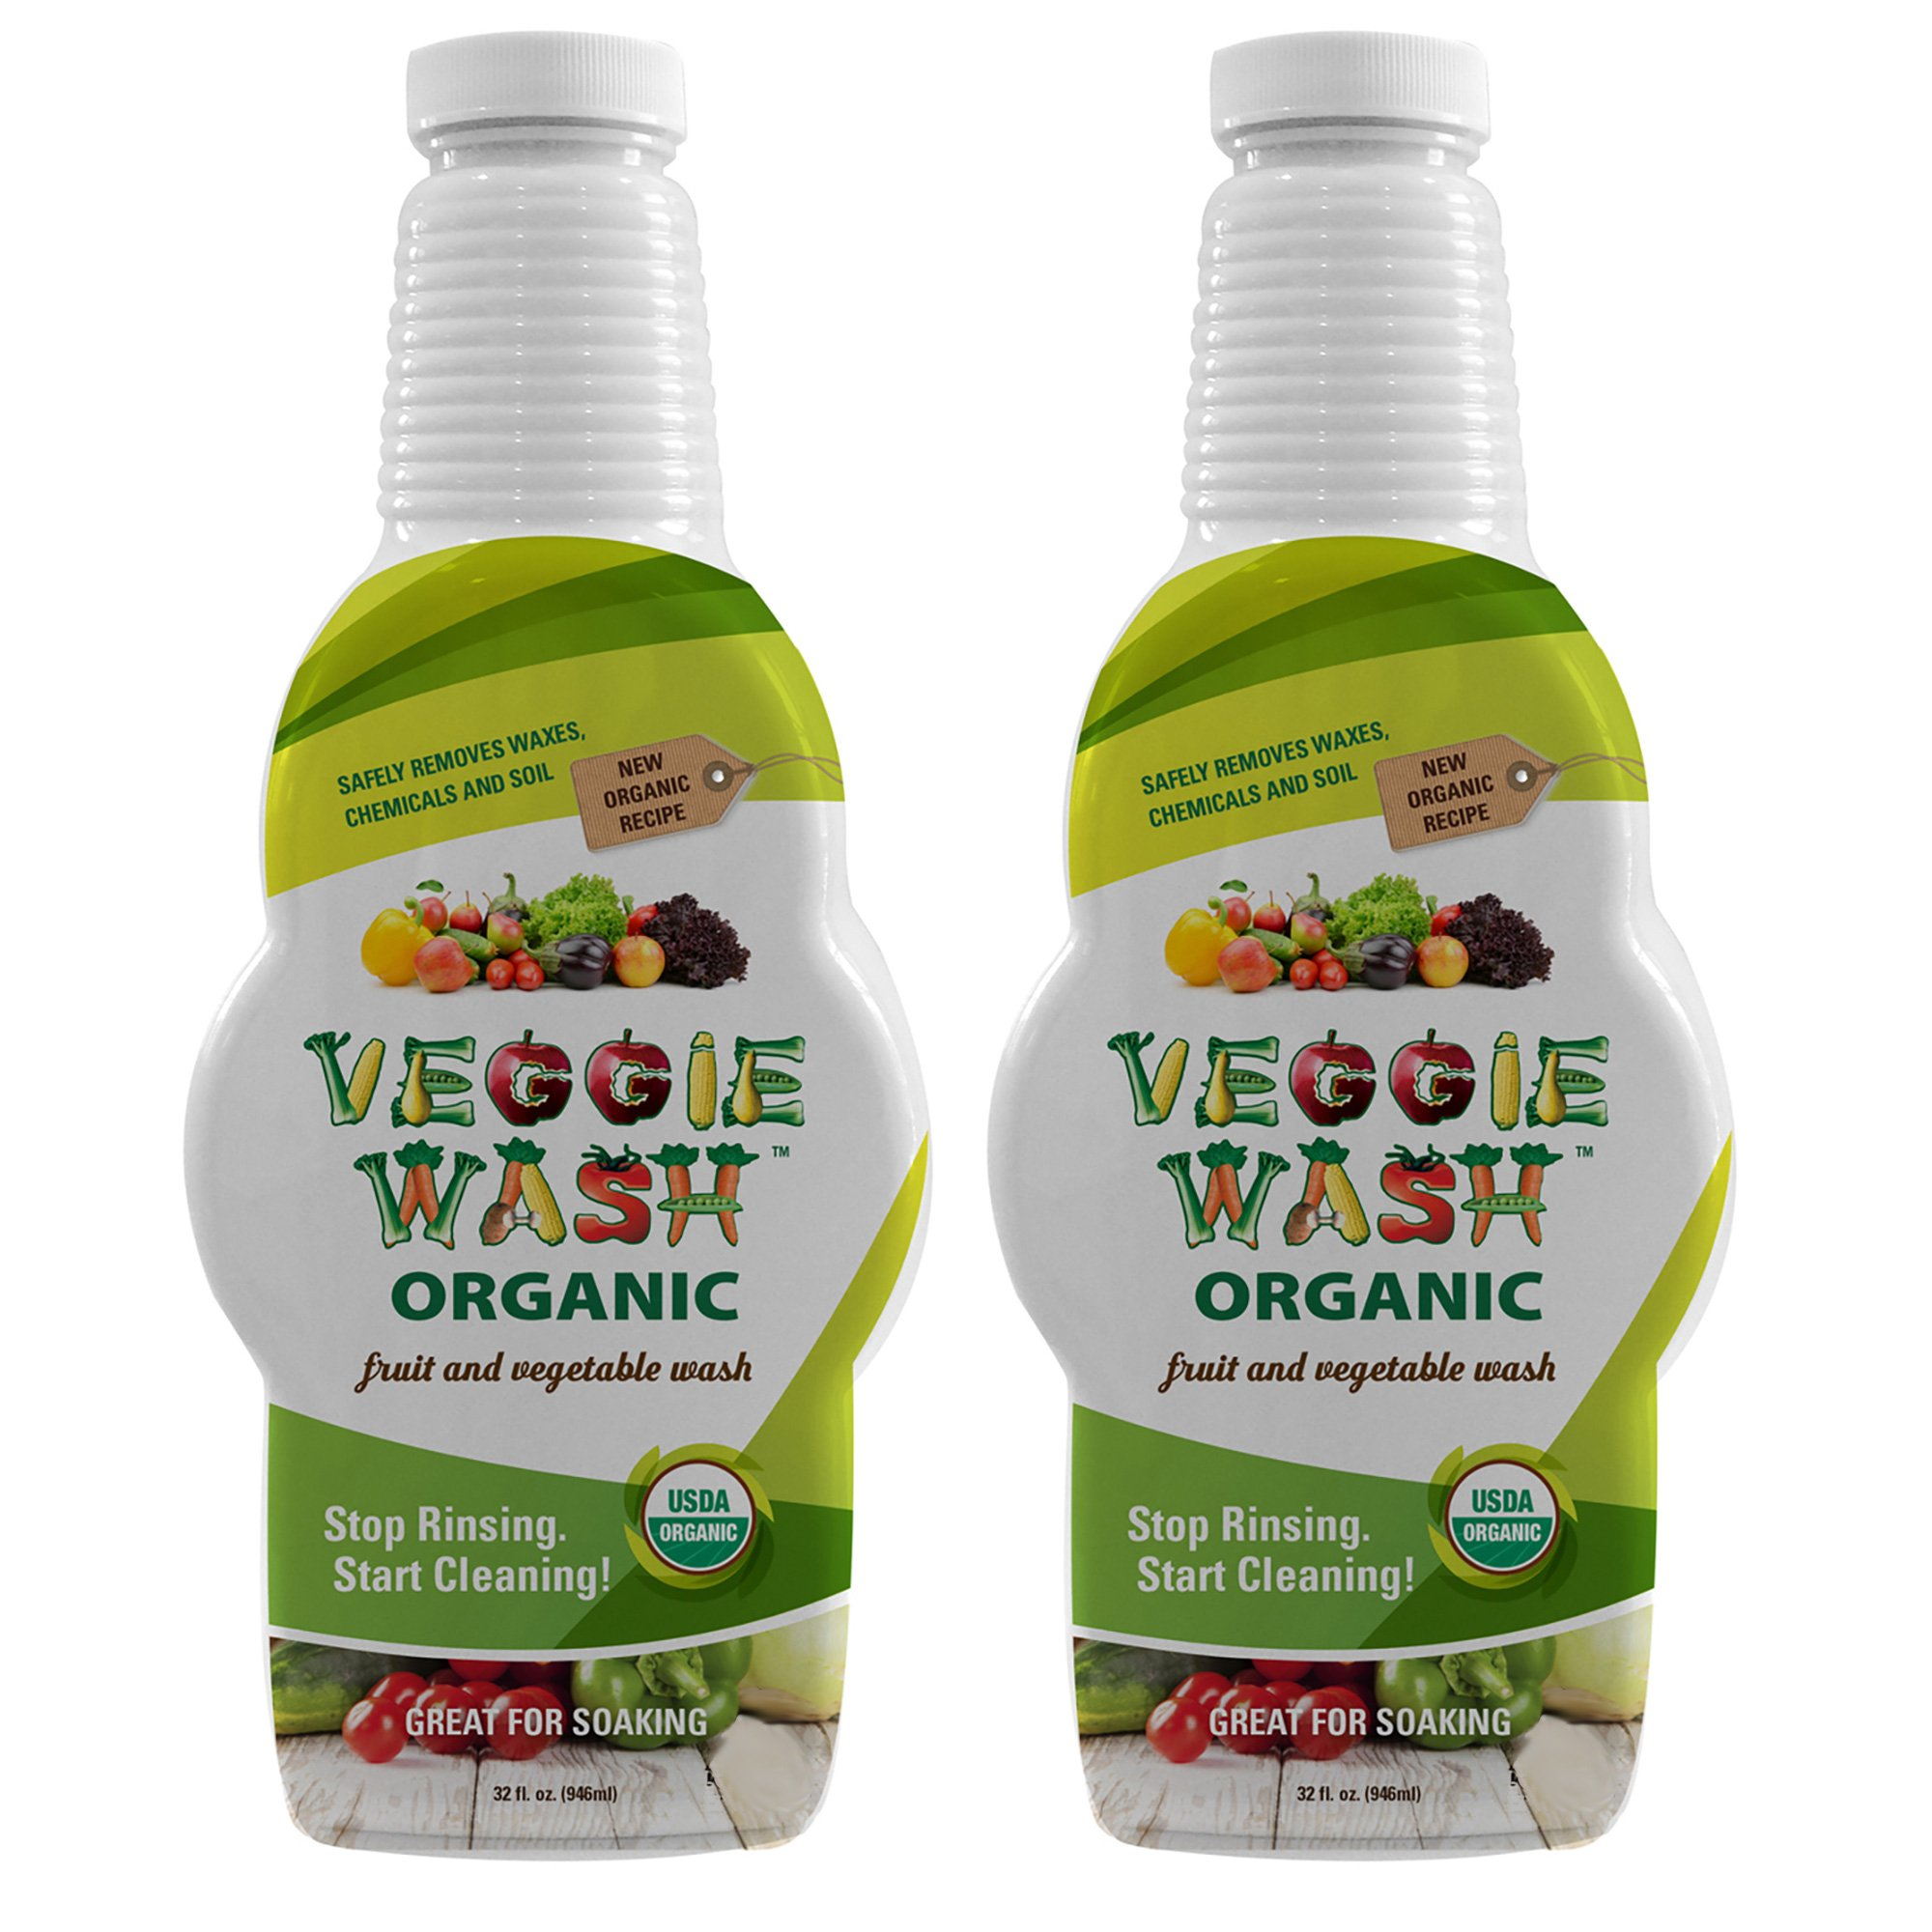 Veggie Wash Organic Fruit and Vegetable Wash, 32 Fl Oz, Pack of 2